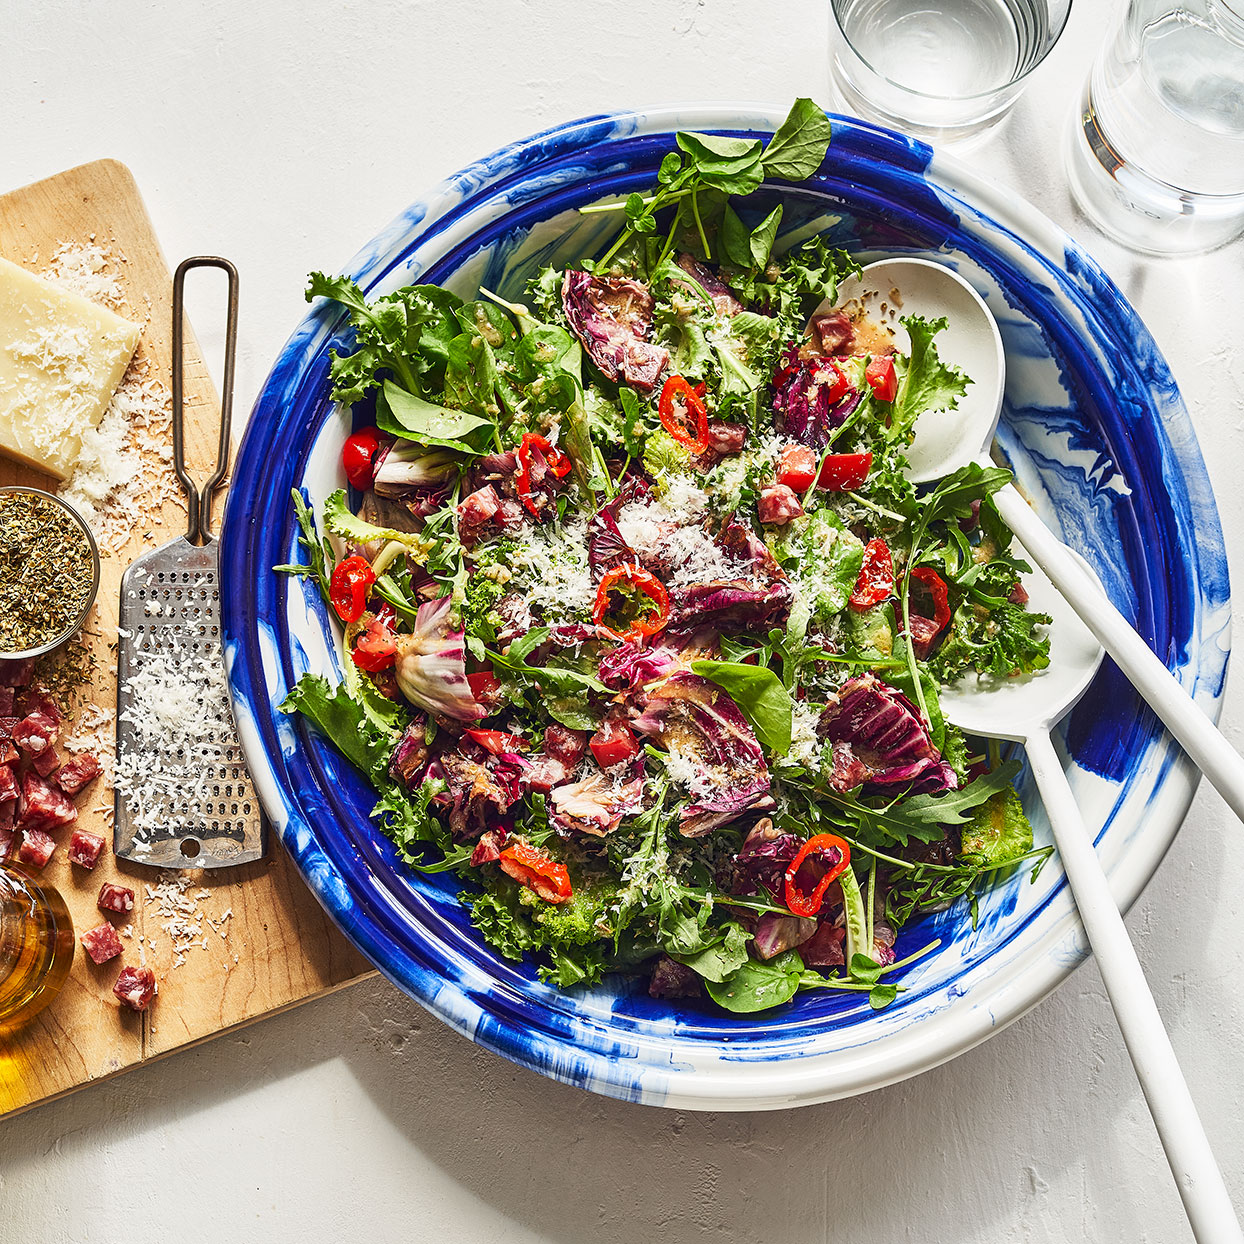 These 4 Easy Add-Ins Will Add Mediterranean Flair to Any Salad